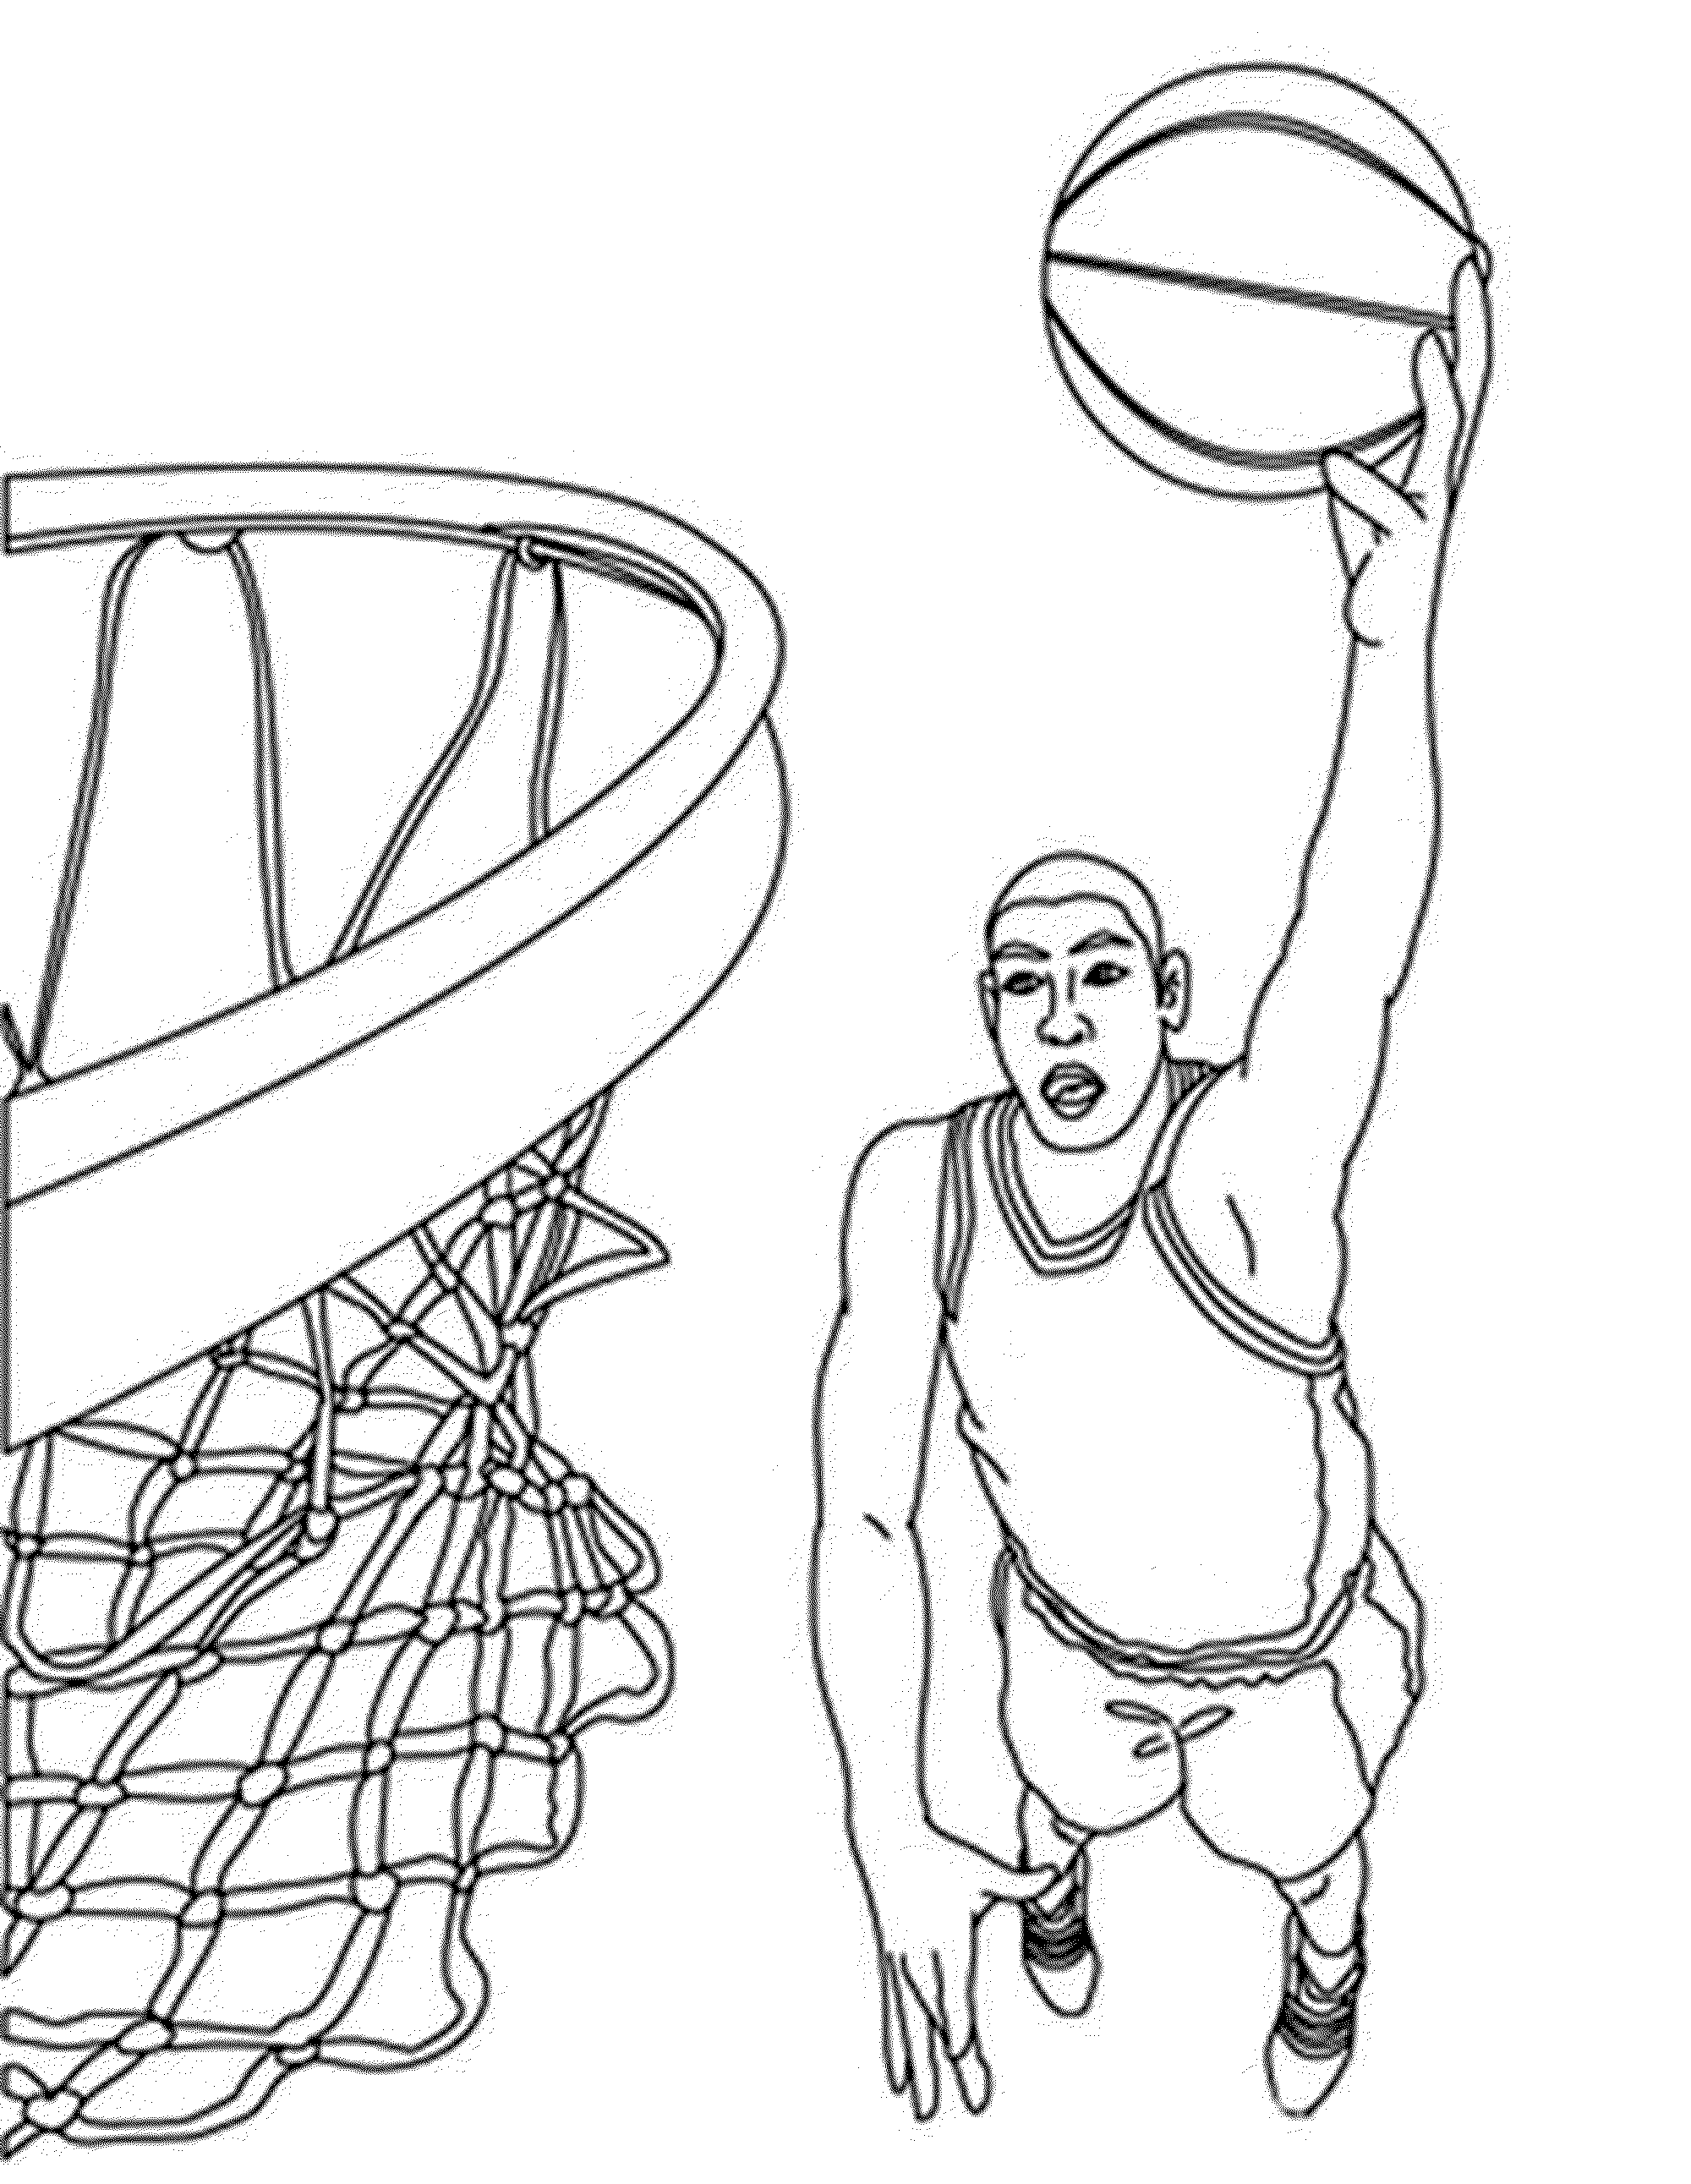 basketball pictures to color free and fun basketball color pages for kids 101 activity to pictures color basketball